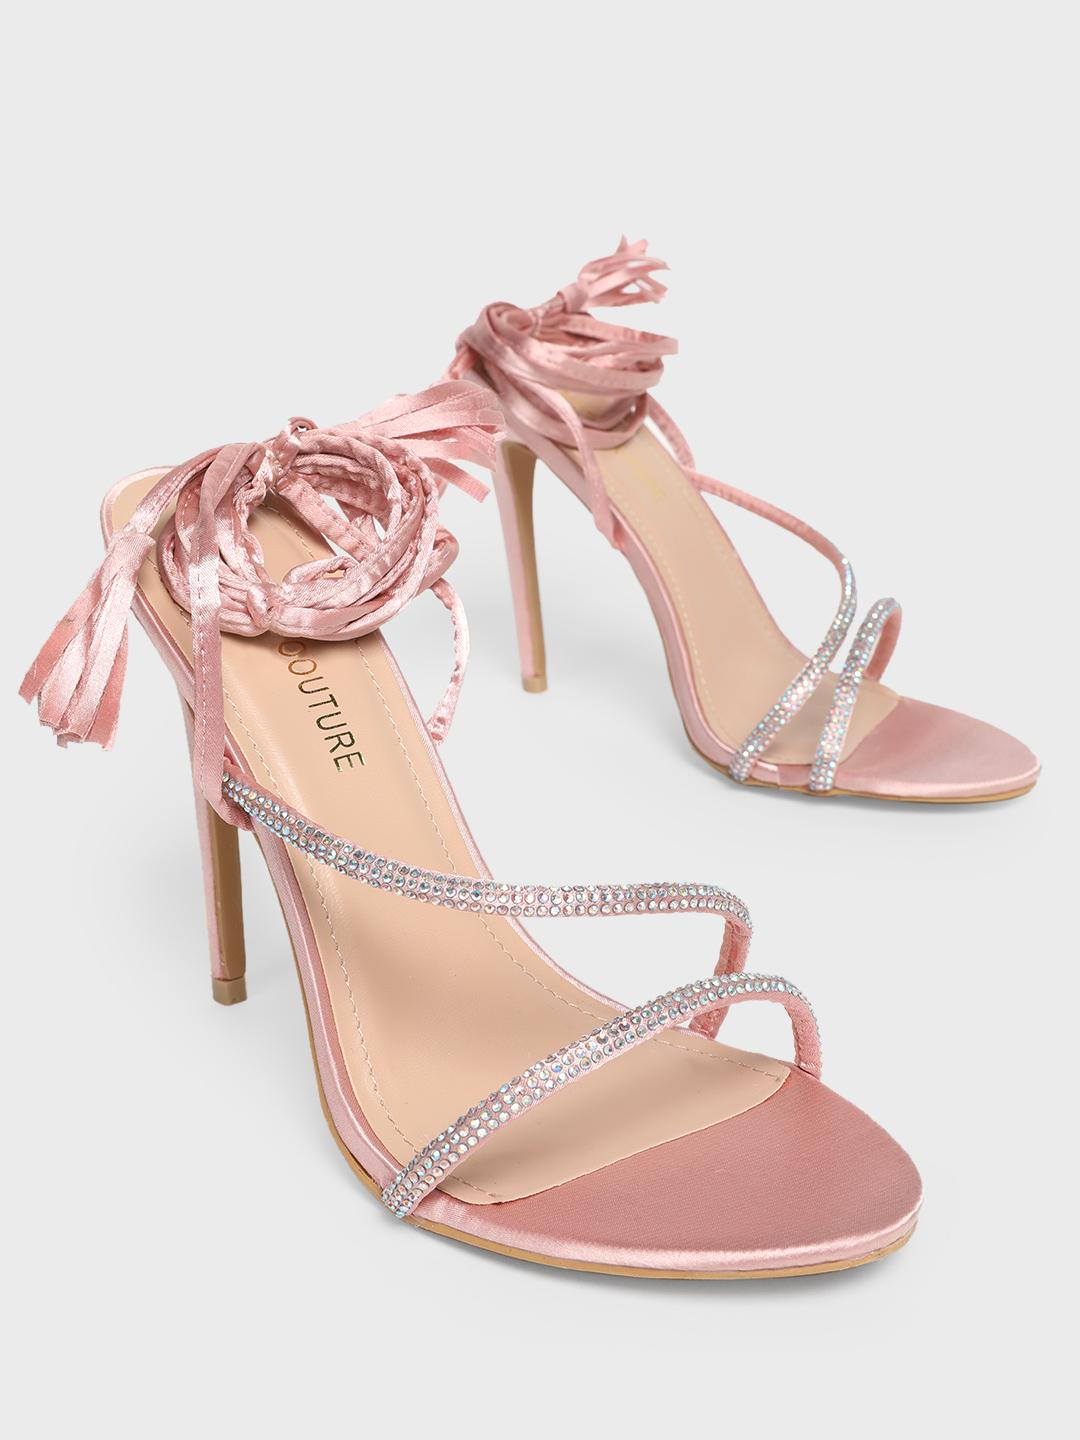 MFT Couture Pink MY FOOT COUTURE Strappy Tie-Up Embellished Heeled Sandals 1